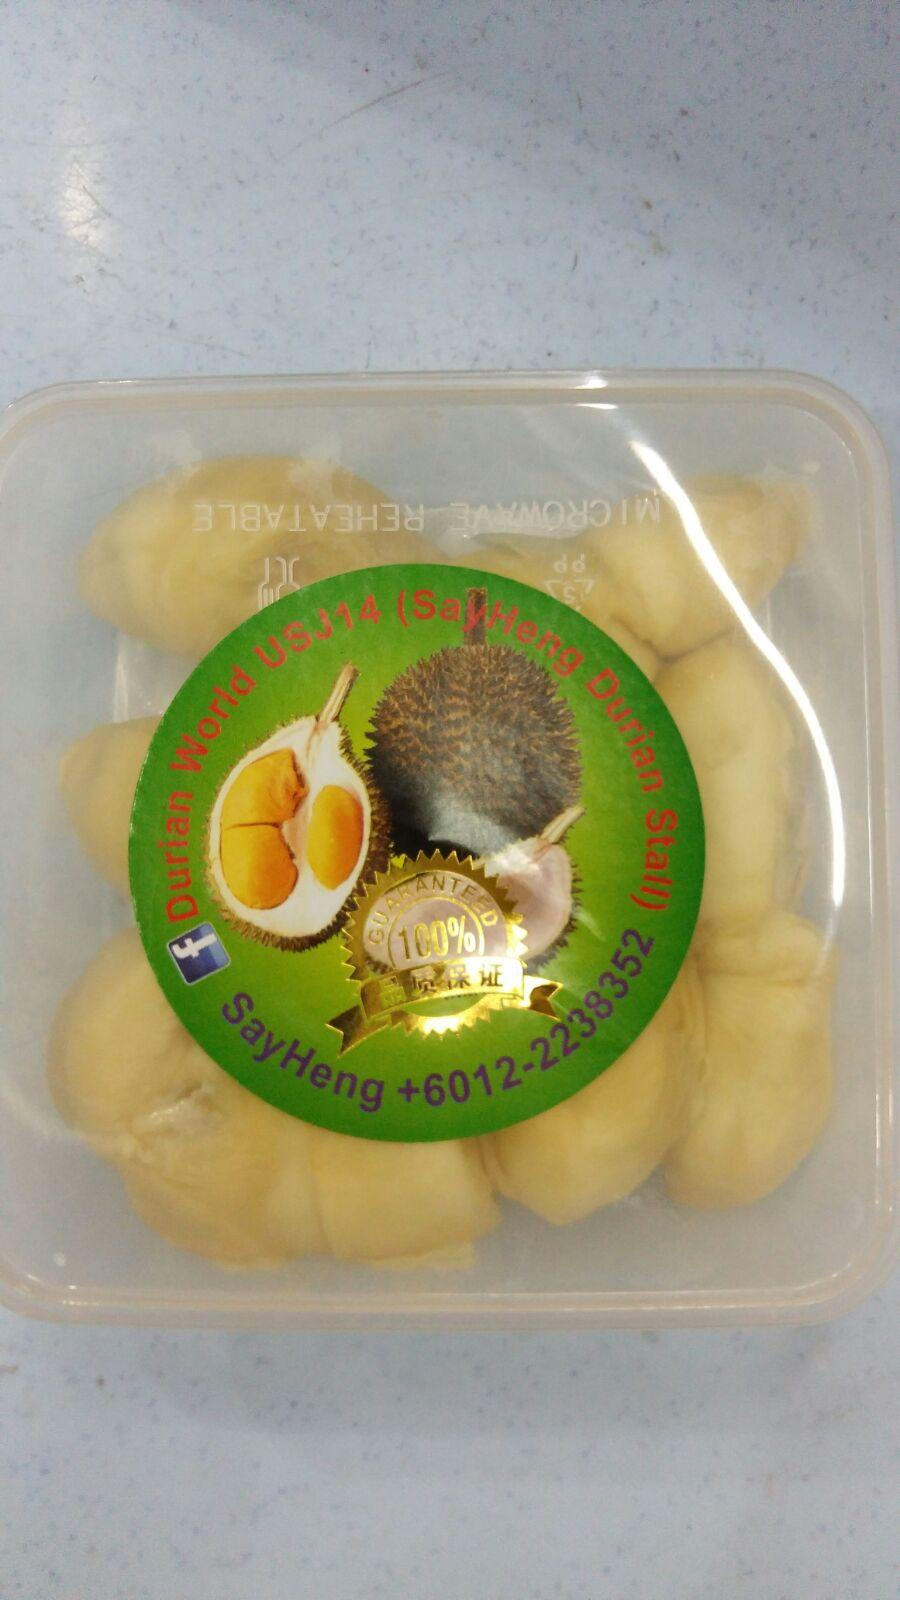 FROZEN DURIAN IN PLASTIC BOX